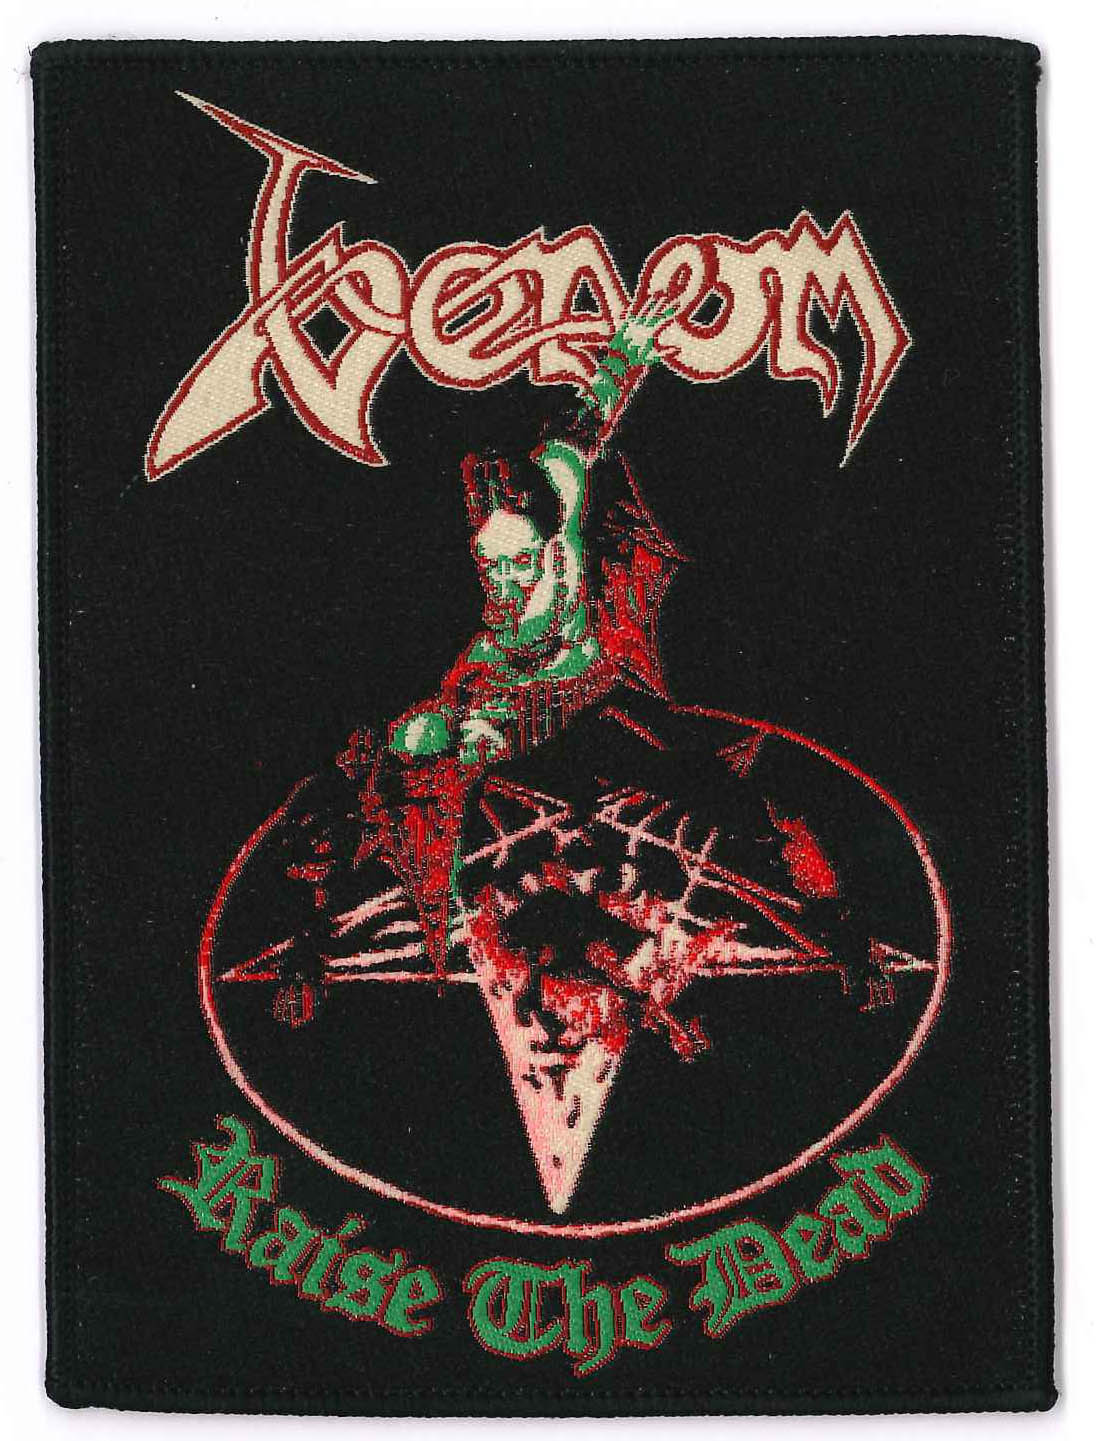 venom black metal patch raise the dead